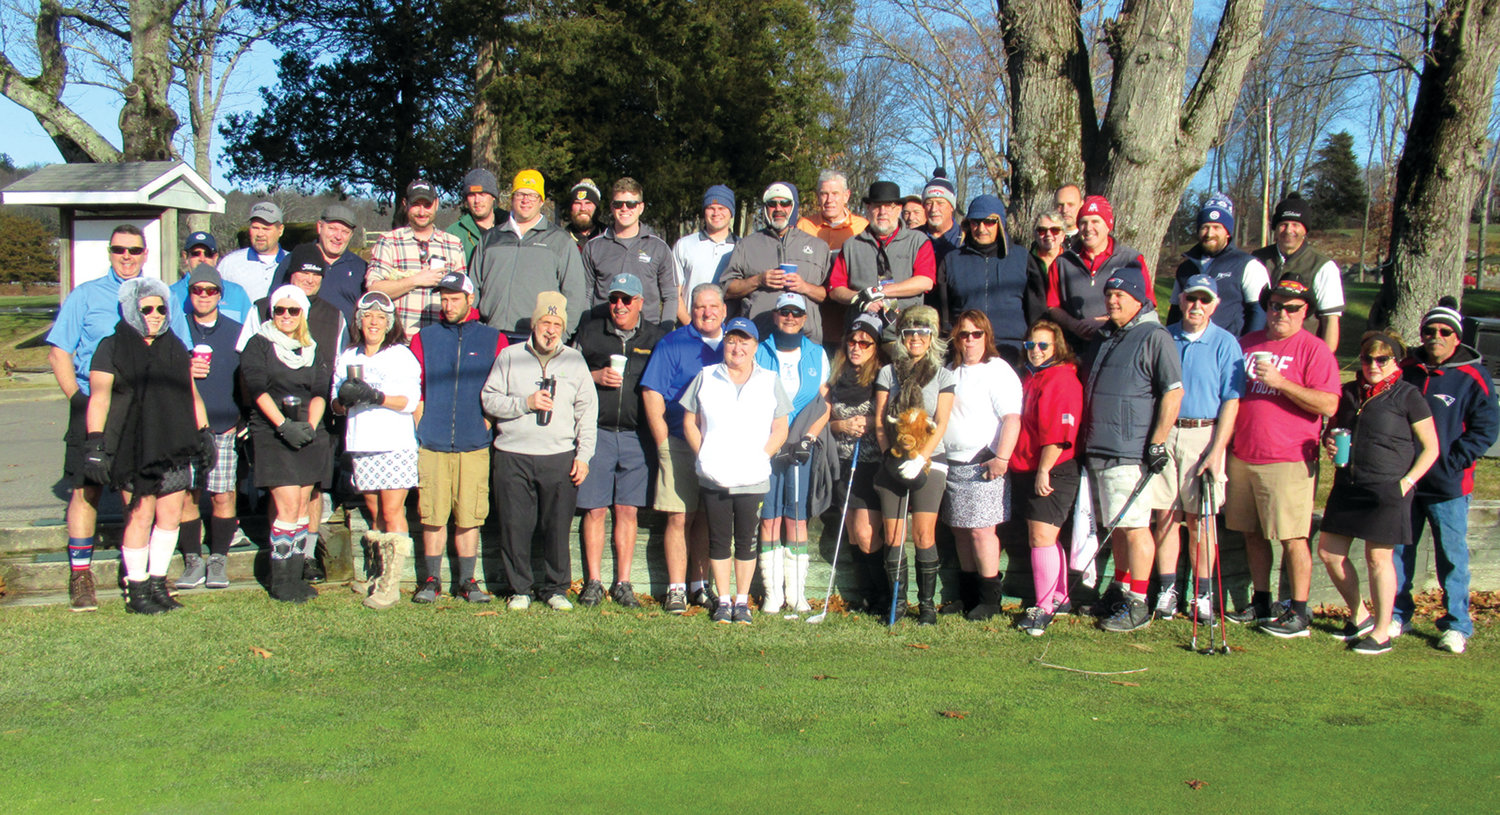 TOASTED TRADITION: This is the record-setting 42-golfer field that teed off on New Year's Day 2020 at Glocester Country Club for the JMCE's 6th Annual Polar Golf Tournament.